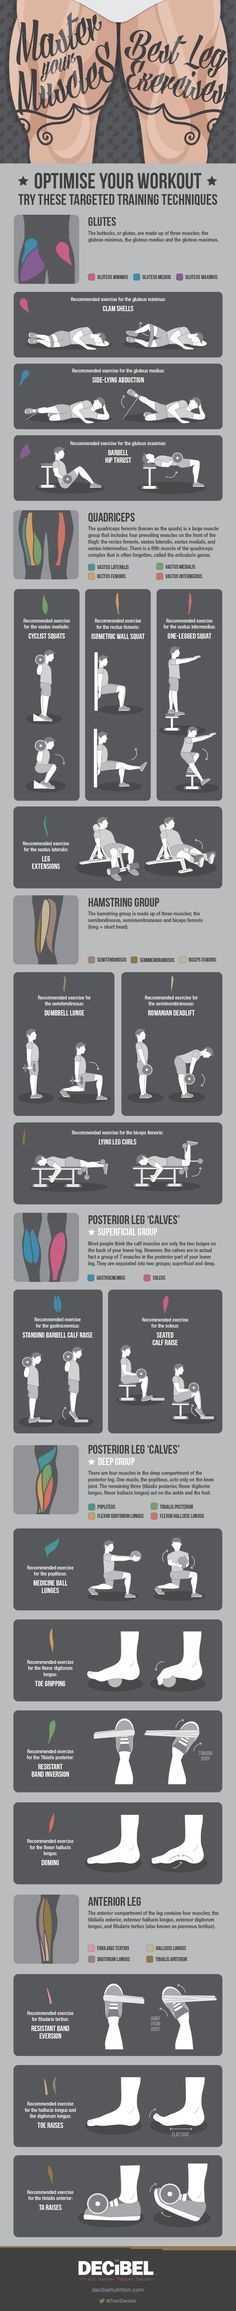 Top targeted workouts in legs for men will work your glutes, quads, hips, and calves.